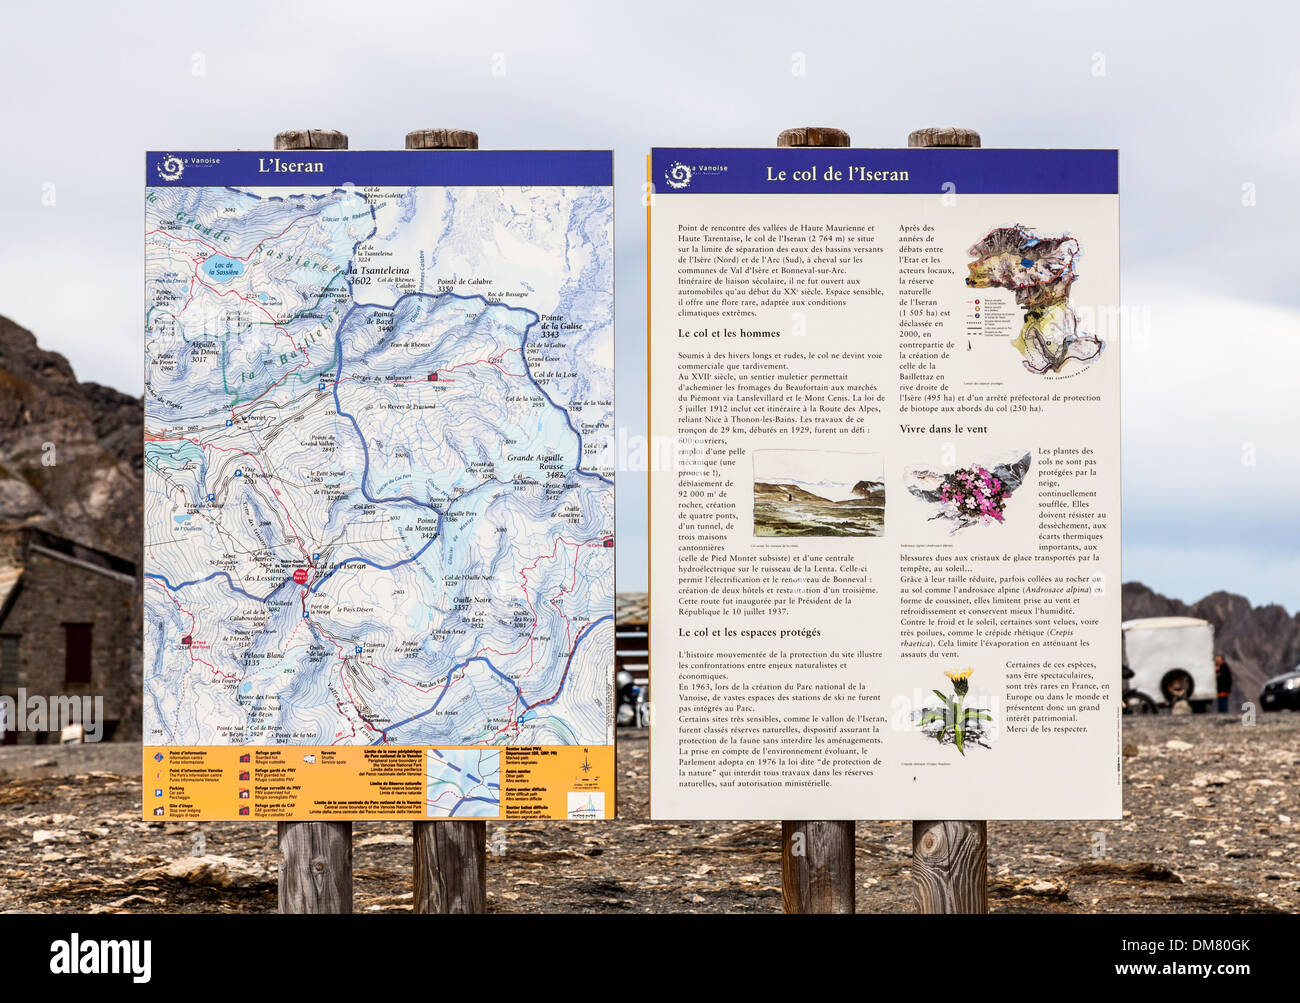 Col d'Iseran flaura, fauna and walking map information boards at the Col d'Iseran, Savoie, France - Stock Image